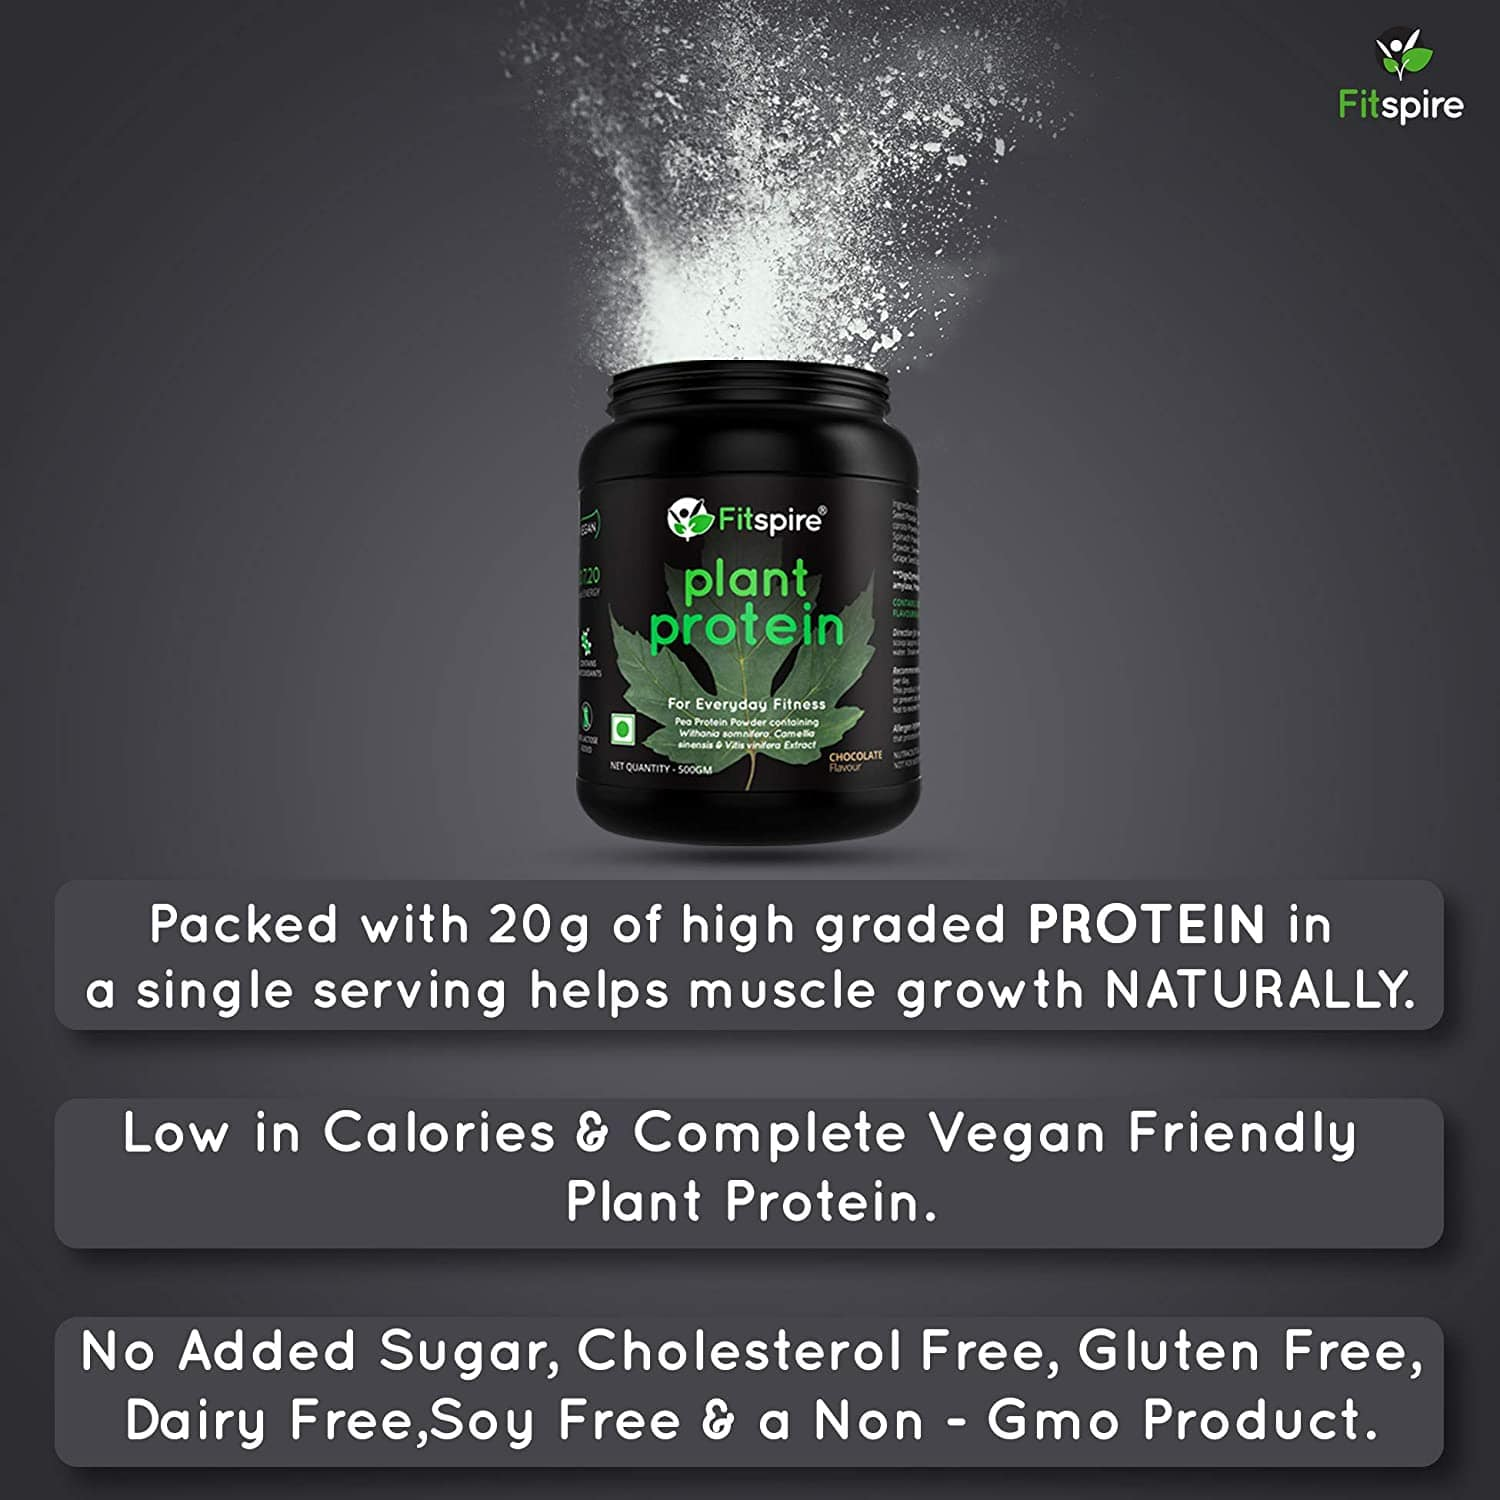 Whey Protein with Loaded Fit Kit | No Added Sugar, Low Carbs, Zero Cholesterol & Gluten Free | Coffee | 4 Kg